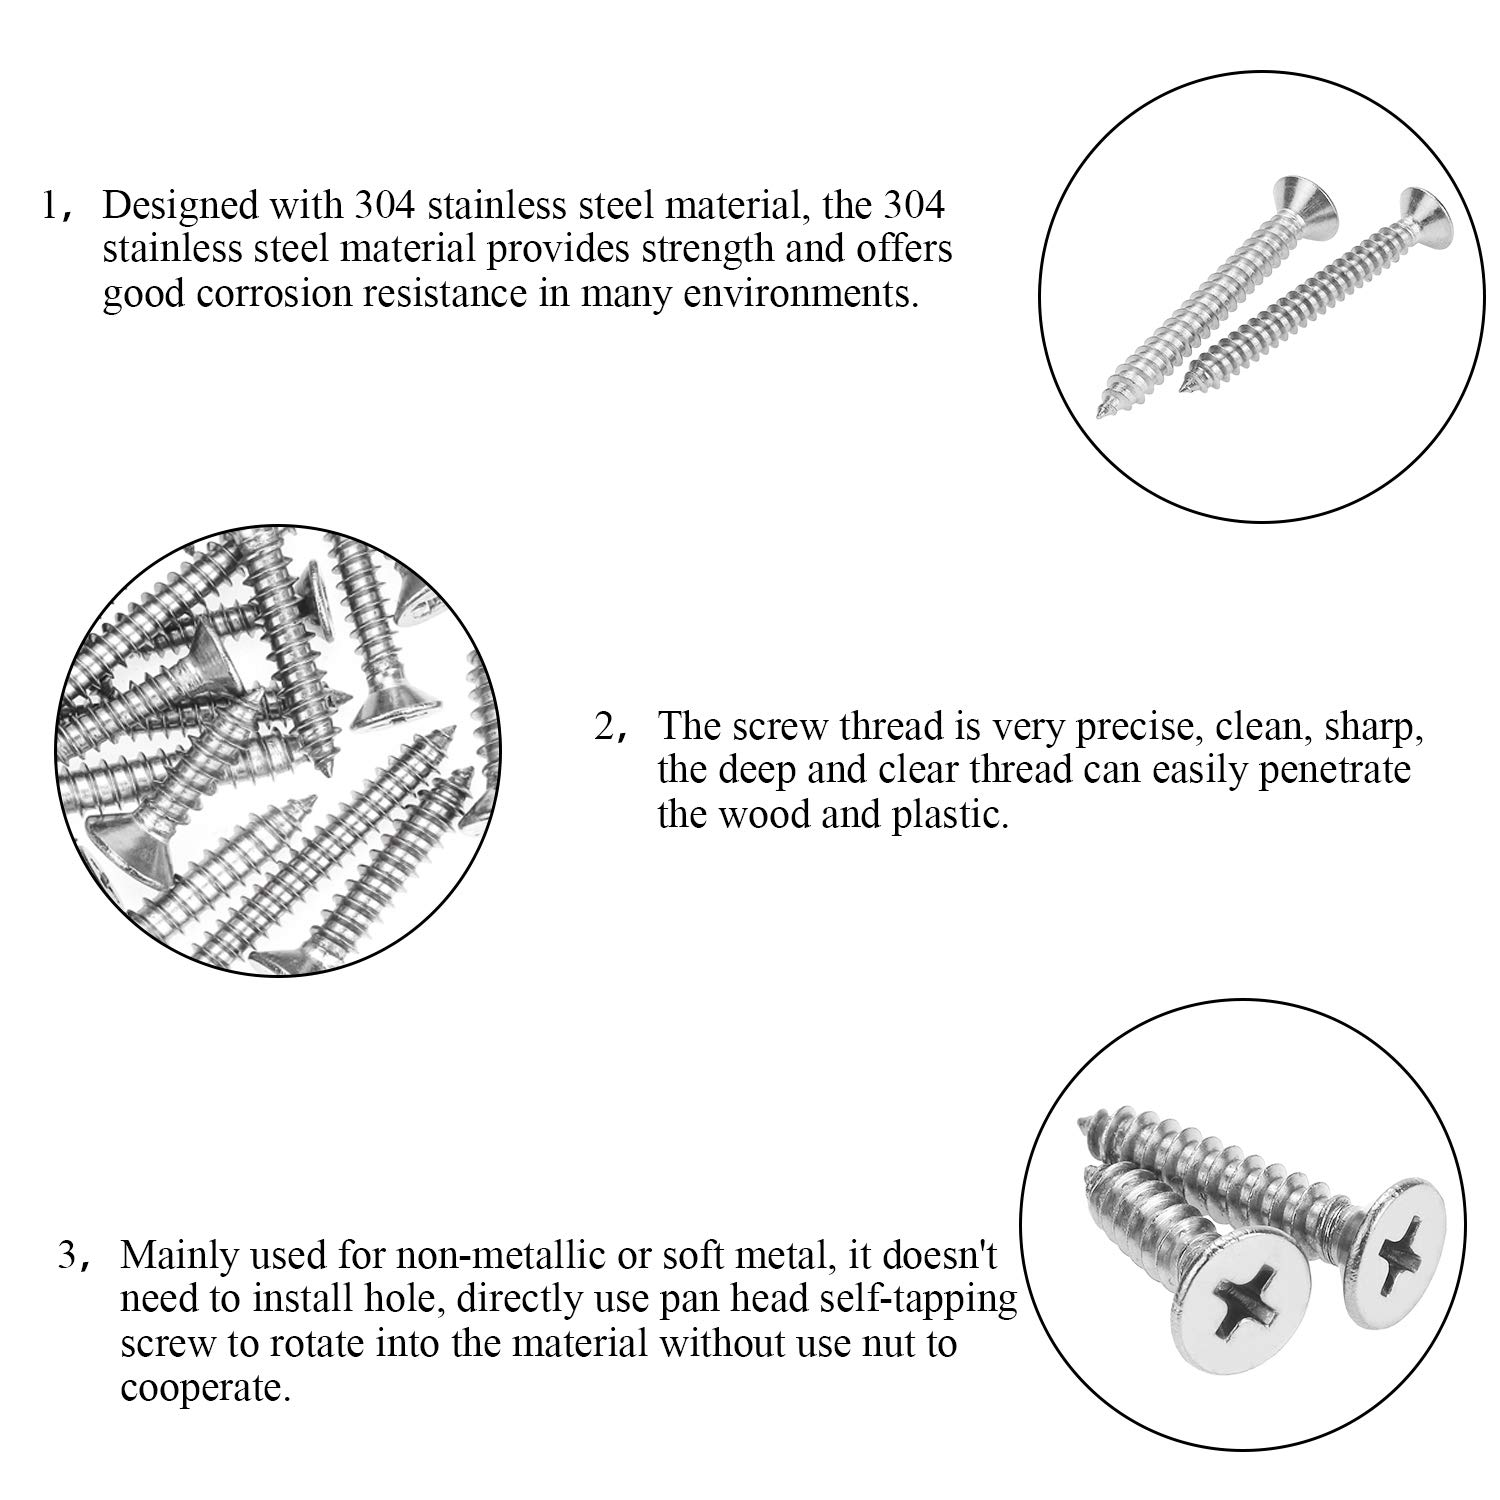 1-1//4 1 3//4 1//2 Wood Screws Assortment Kit DYWISHKEY 200 Pieces #8 x 3//8 1-1//2 1-5//8 Stainless Steel 304 Phillips Flat Head Self-Tapping Screws 5//8